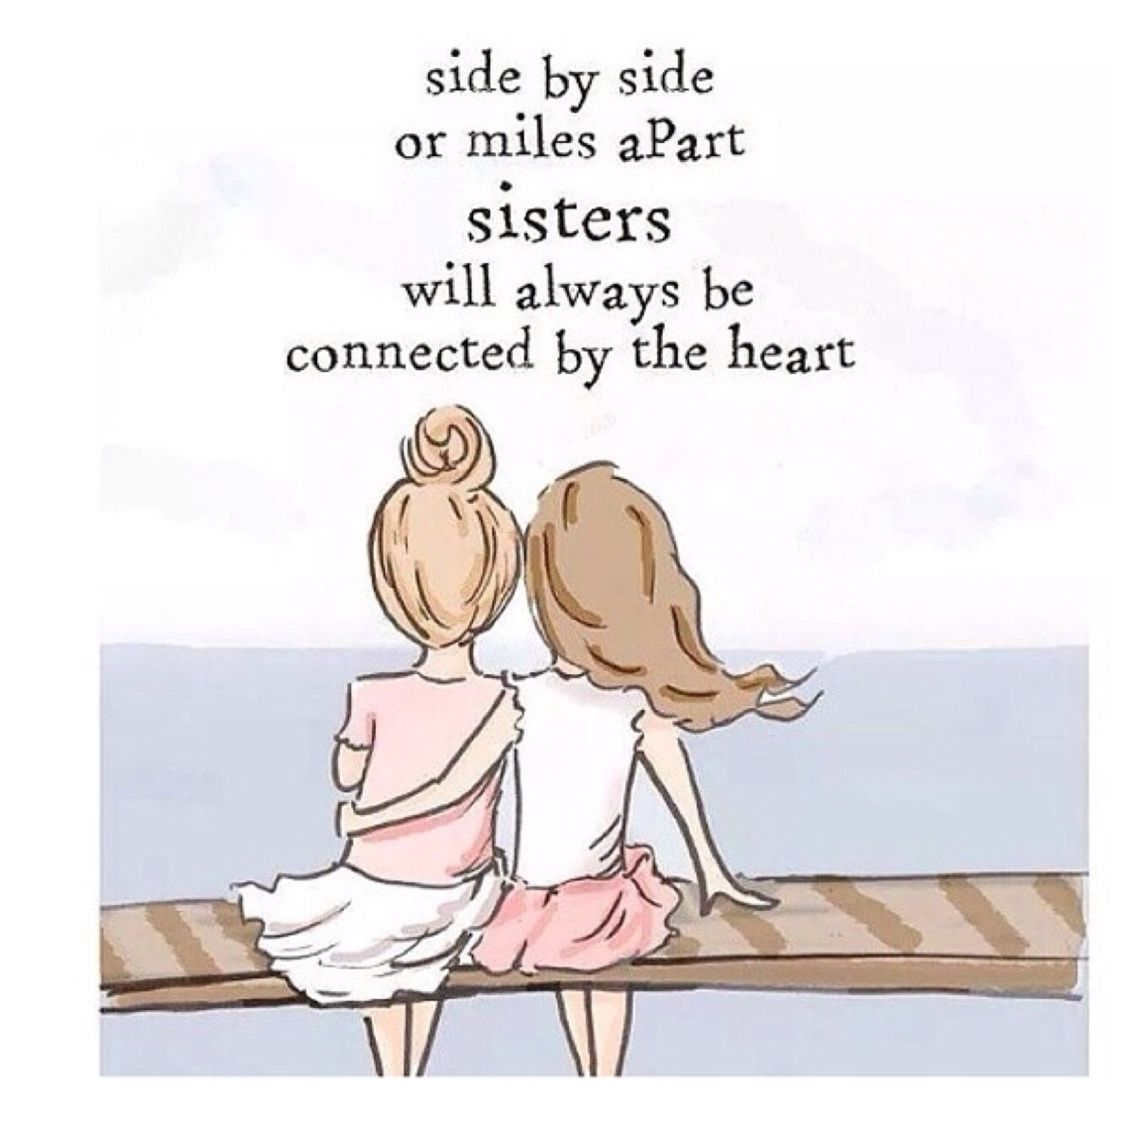 Love My Sisters Near Or Far Sister Quotes Friends Quotes Love My Sister